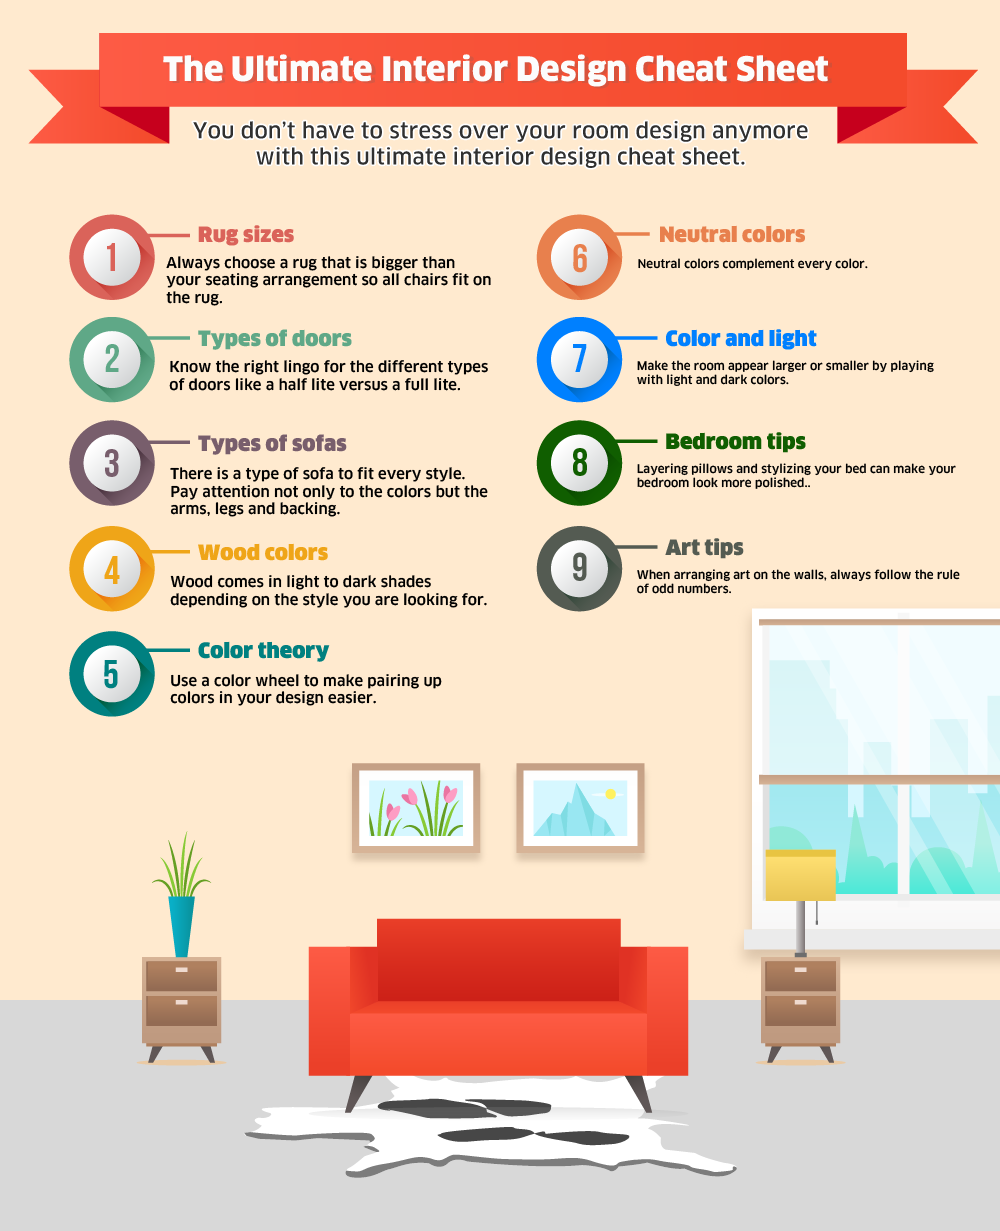 The Ultimate Interior Design Cheat Sheet